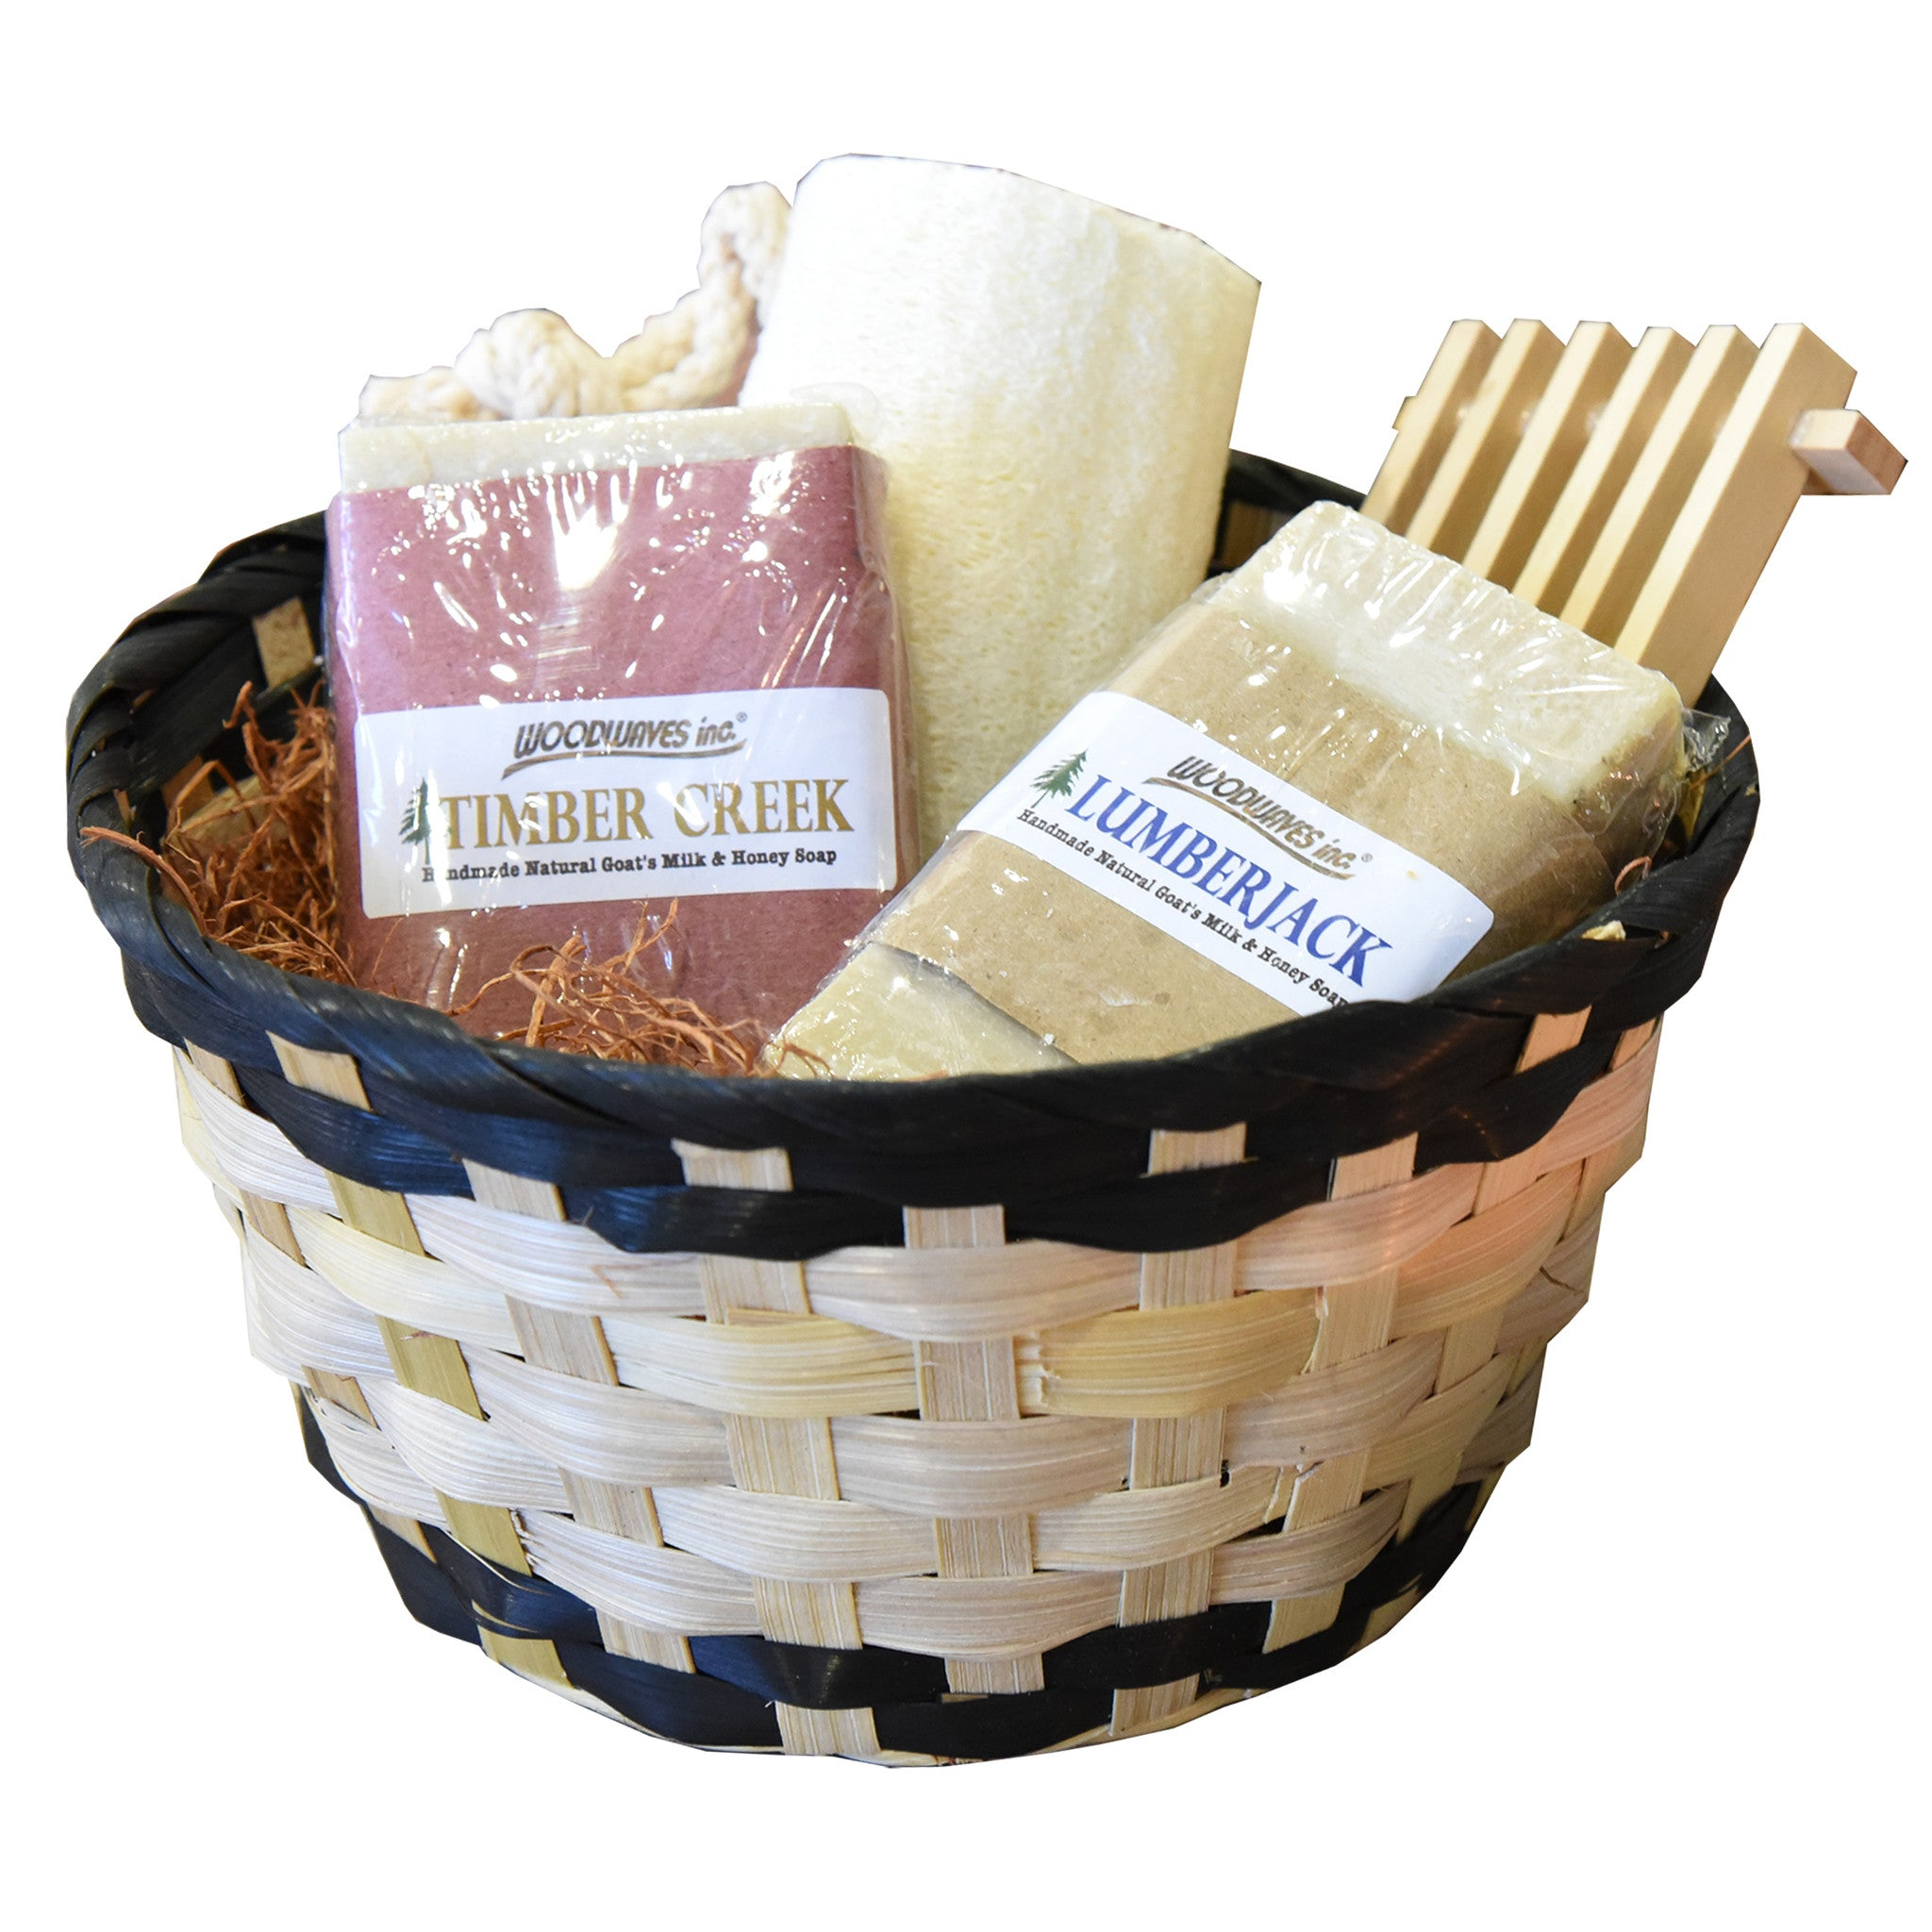 Handmade men 39 s spa gift basket bath set goat 39 s milk soap for Mens bath set